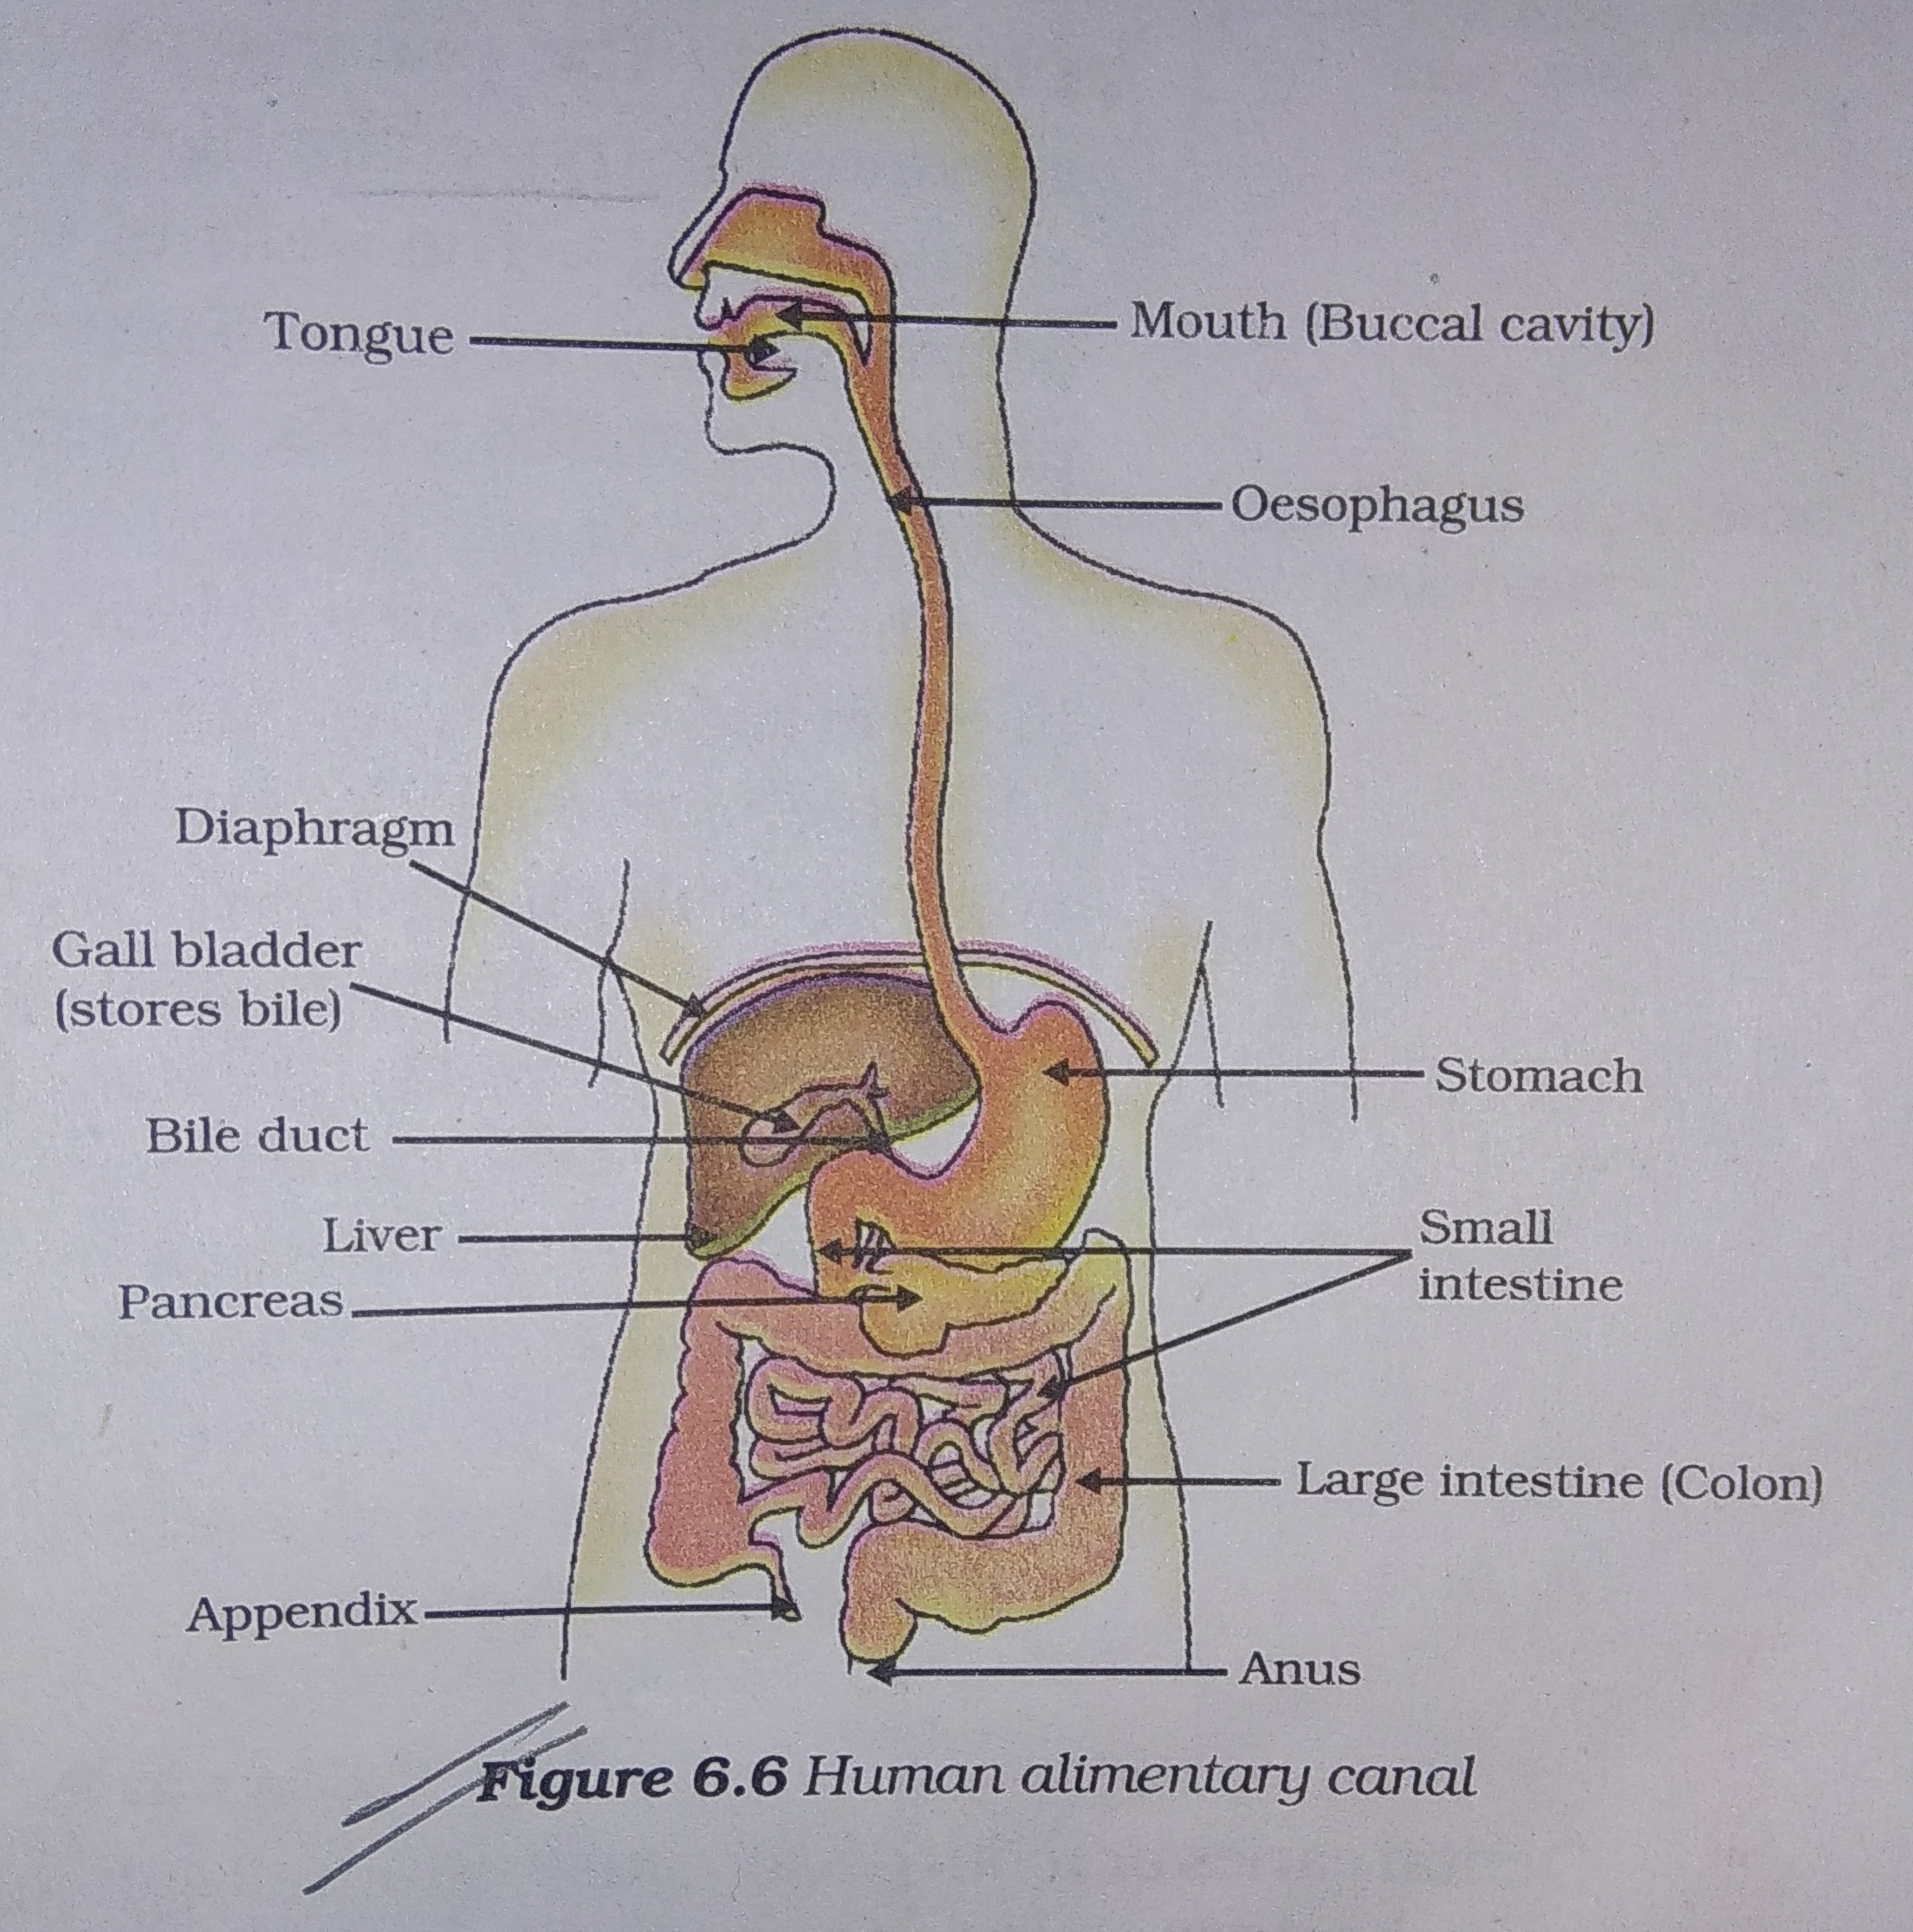 Draw A Well Labeled Diagram Of Human Alimentary Canal